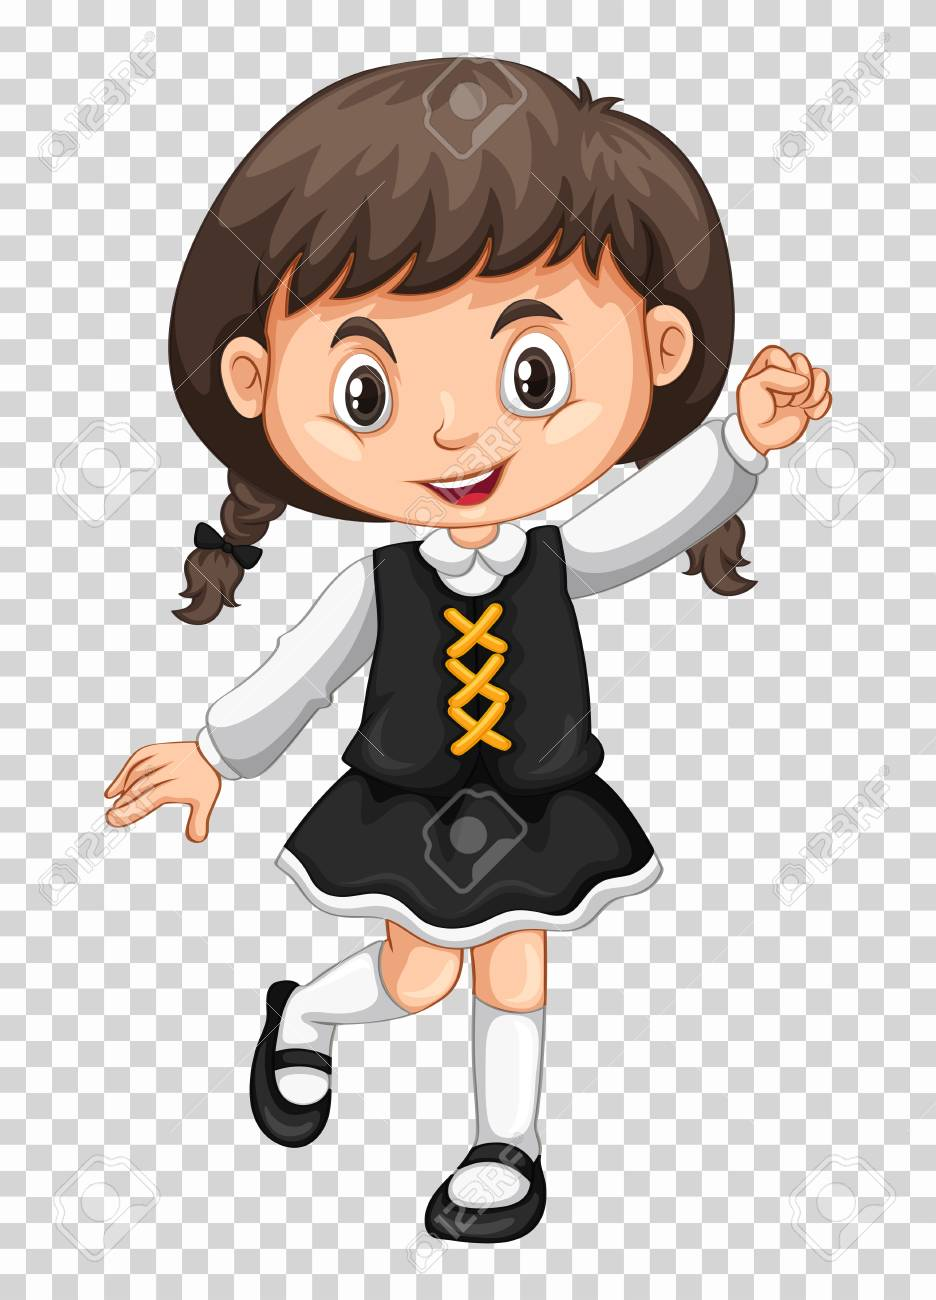 Cute Girl On Transparent Background Illustration Royalty Free Cliparts Vectors And Stock Illustration Image 78784576